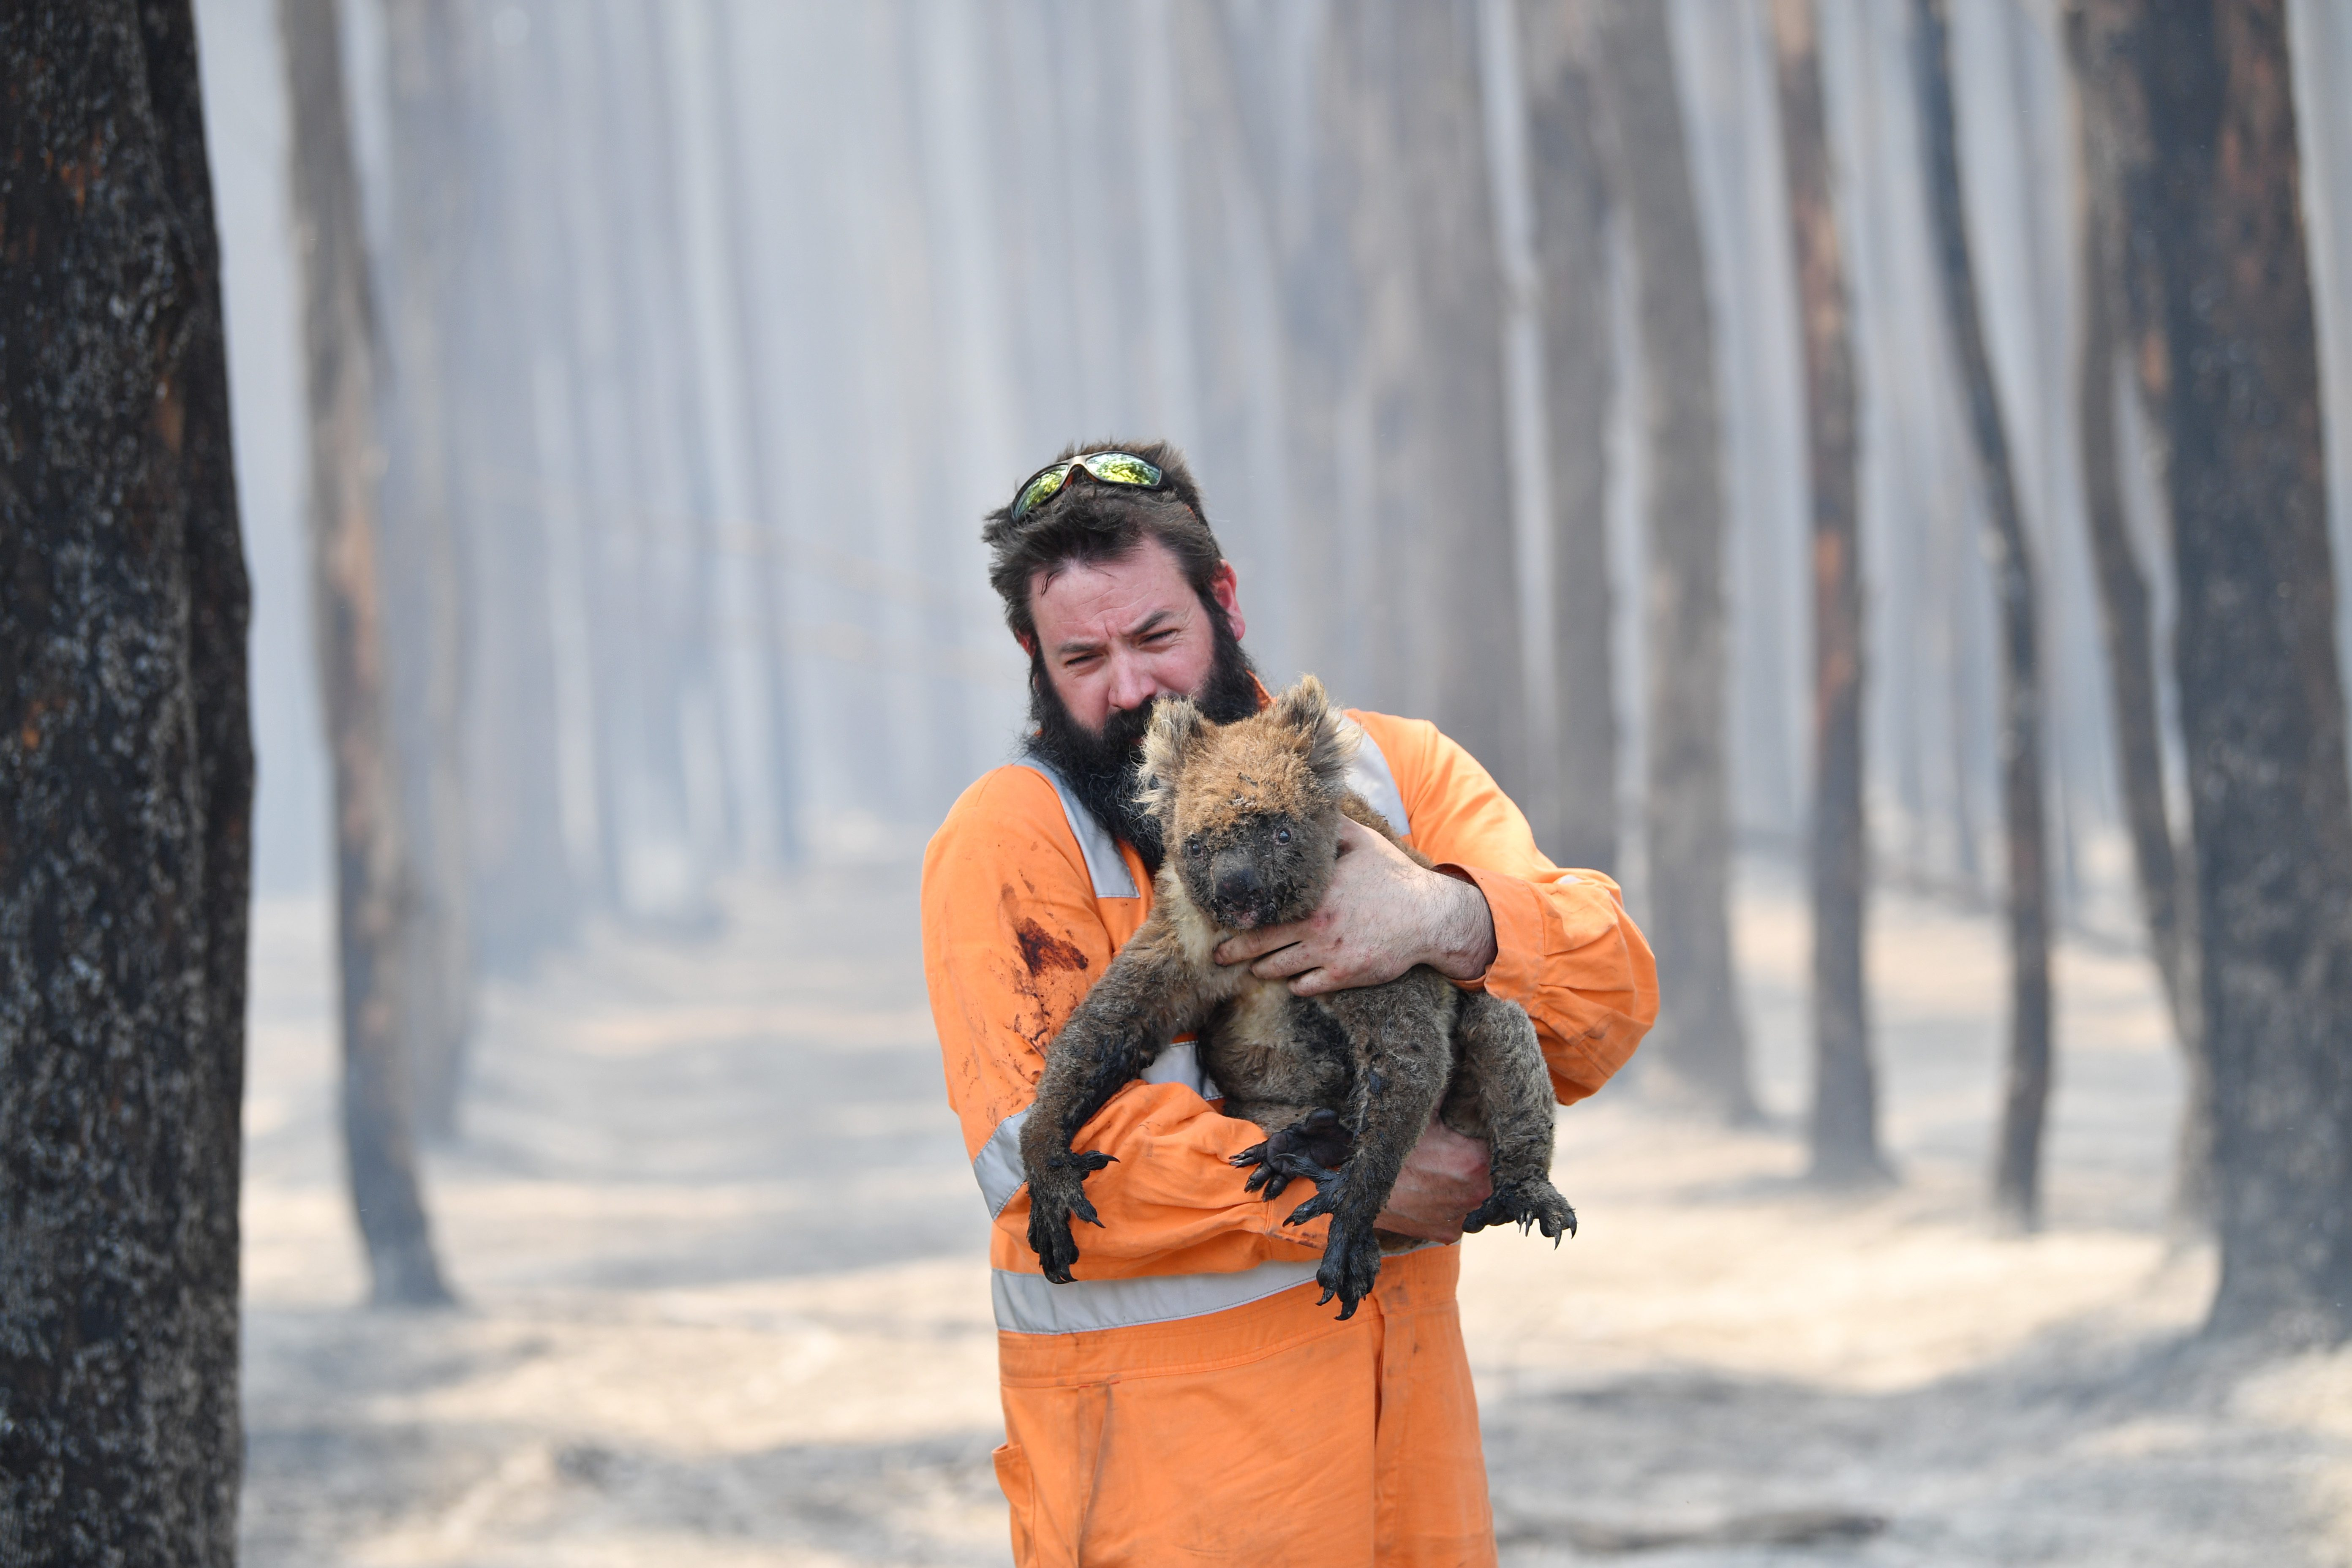 Mandatory Credit: Photo by DAVID MARIUZ/EPA-EFE/Shutterstock (10519515b) Adelaide wildlife rescuer Simon Adamczyk holds a koala he rescued at a burning forest near Cape Borda on Kangaroo Island, Australia, 07 January 2020. A convoy of Army vehicles, transporting up to 100 Army Reservists and self-sustainment supplies, is on Kangaroo Island as part of Operation Bushfire Assist at the request of the South Australian Government. Bushfires in Australia, Kangaroo Island - 07 Jan 2020